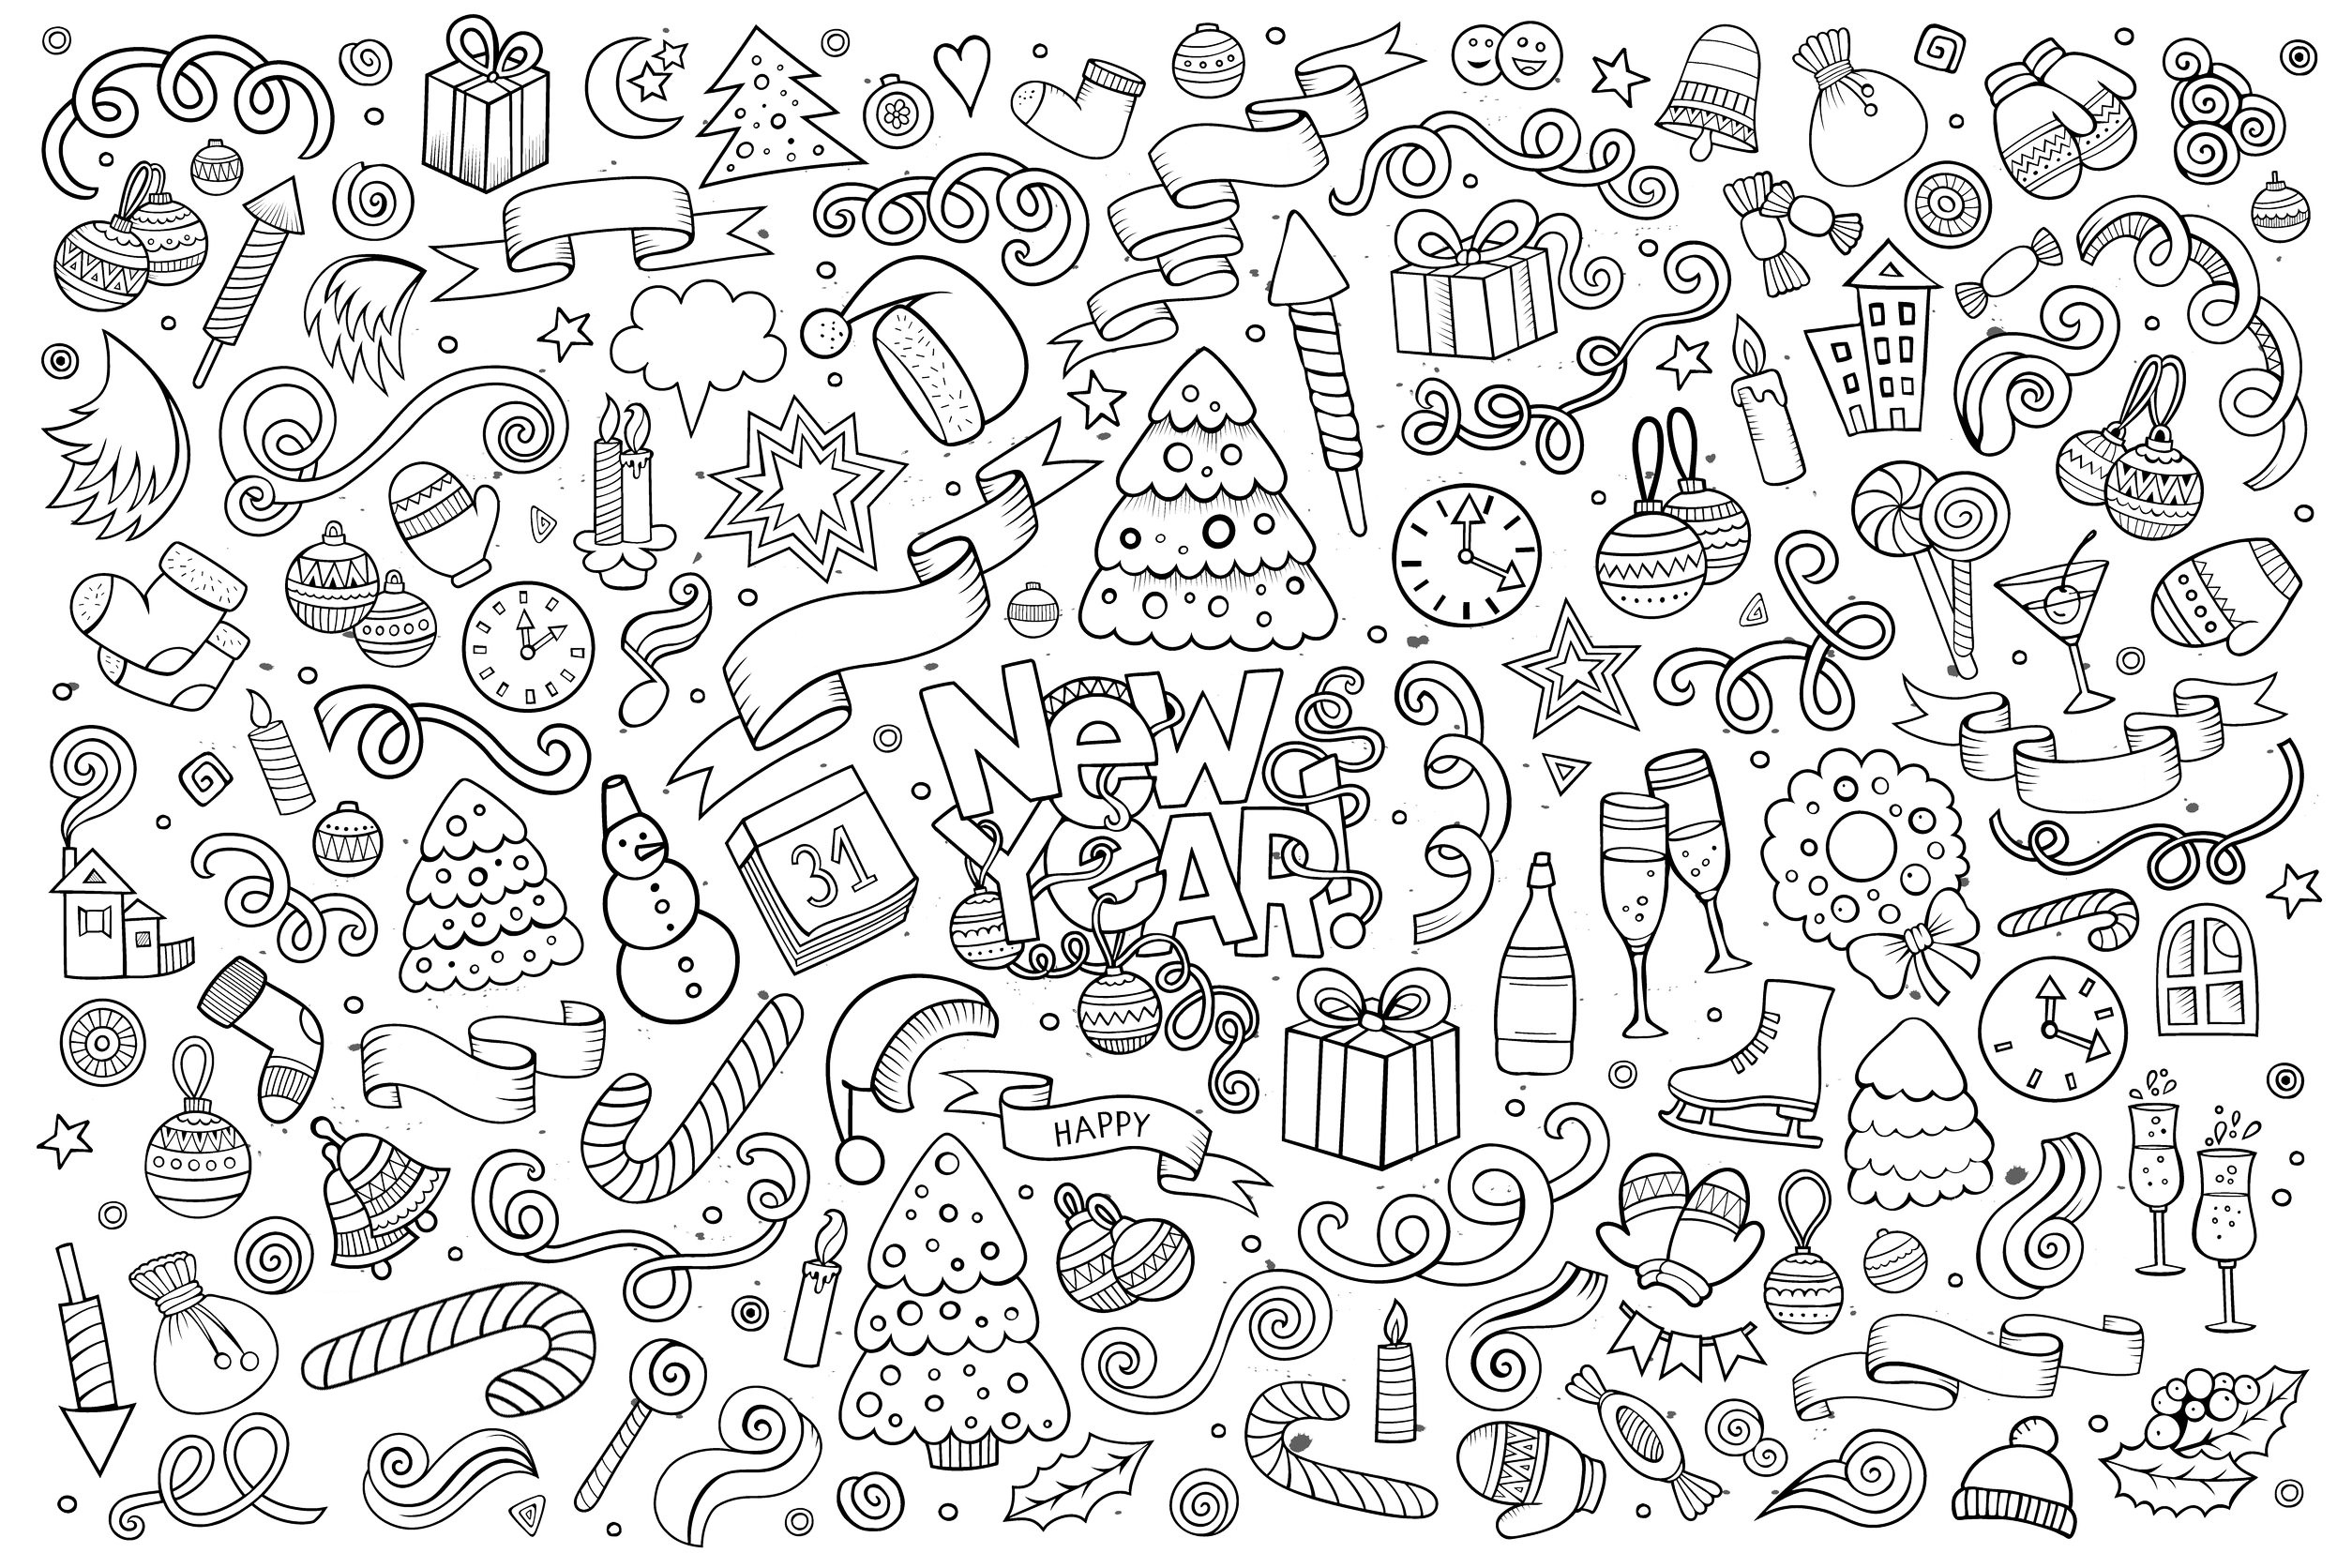 Coloring happy new year doodling style by balabolka